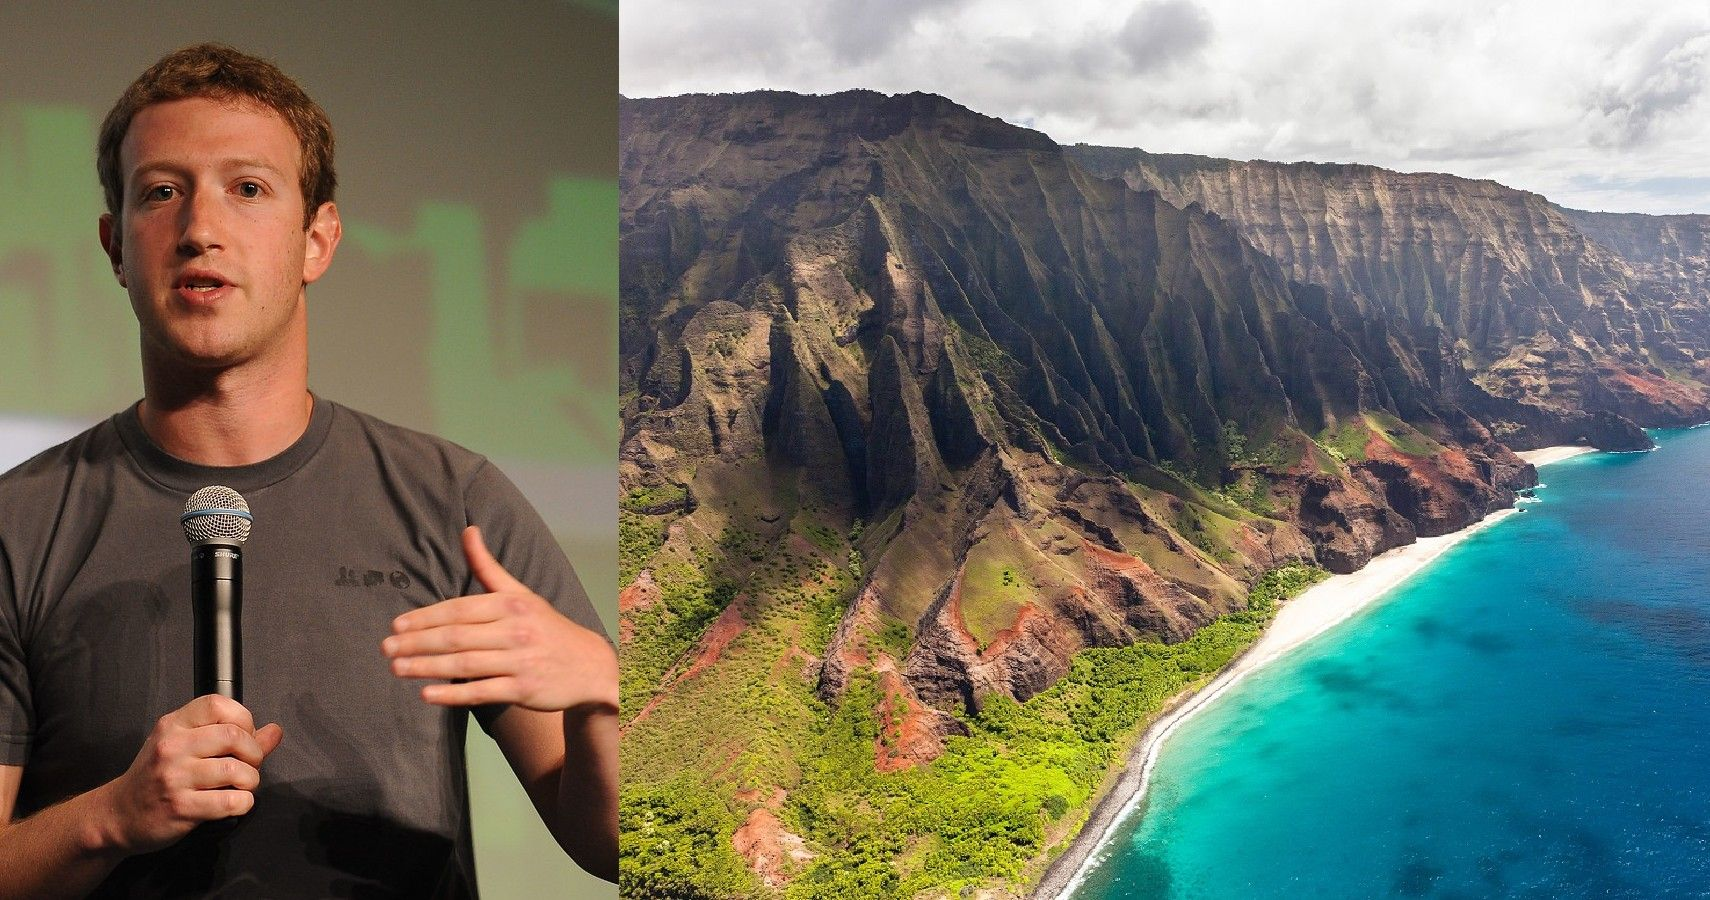 Mark Zuckerberg Invests $53 Million For 600 Acres In Hawaii